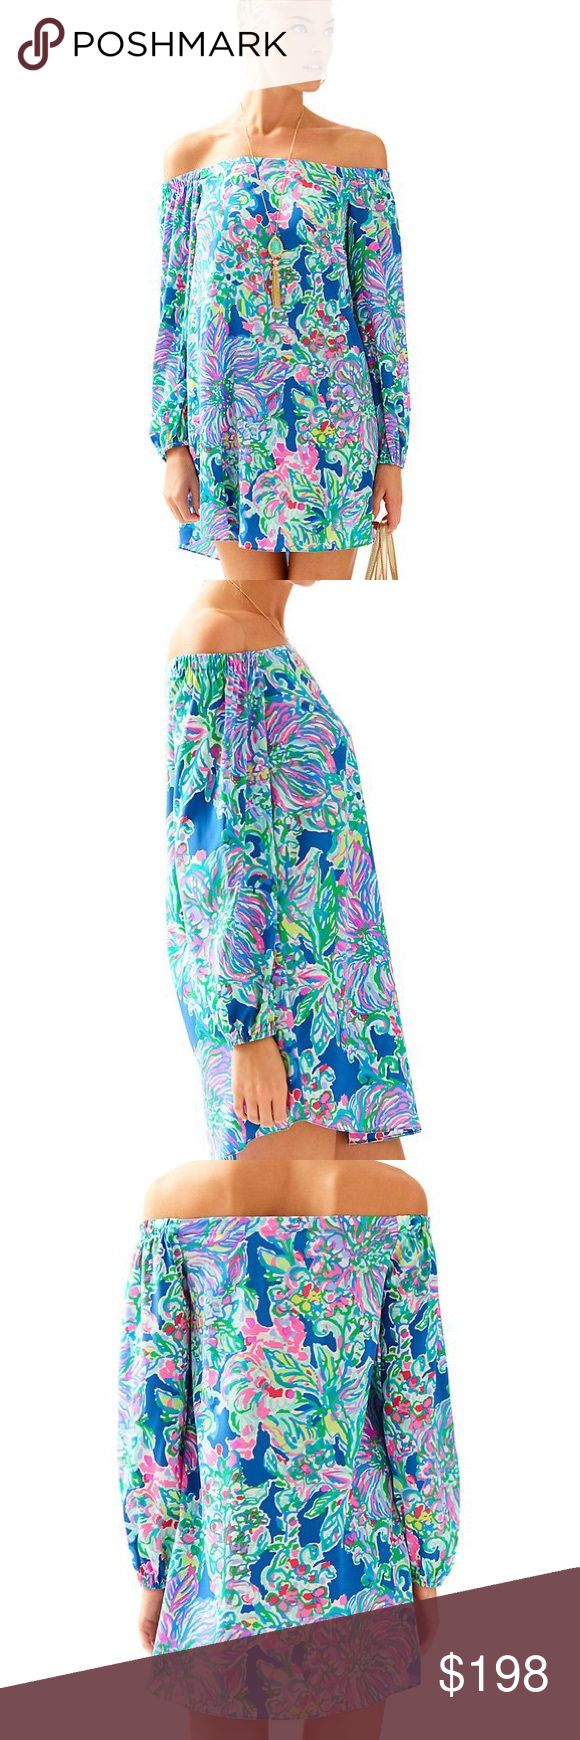 "lilly Pulitzer adira off the shoulder dress large Size large. Stretch silk. 2017. Price is firm I paid full price and am losing out on this but I bought it non returnable. Super cute off the shoulder style beautiful print great reviews online. NWT The Adira Stretch Silk Dress is an A-line, long sleeved, off the shoulder dress.  Sleeved Off The Shoulder Dress. 35"" From Top Of Shoulder To Hem. Length: Above The Knee. Stretch Silk - Printed (90% Silk, 10% Spandex). Dry Clean Only. Imported…"